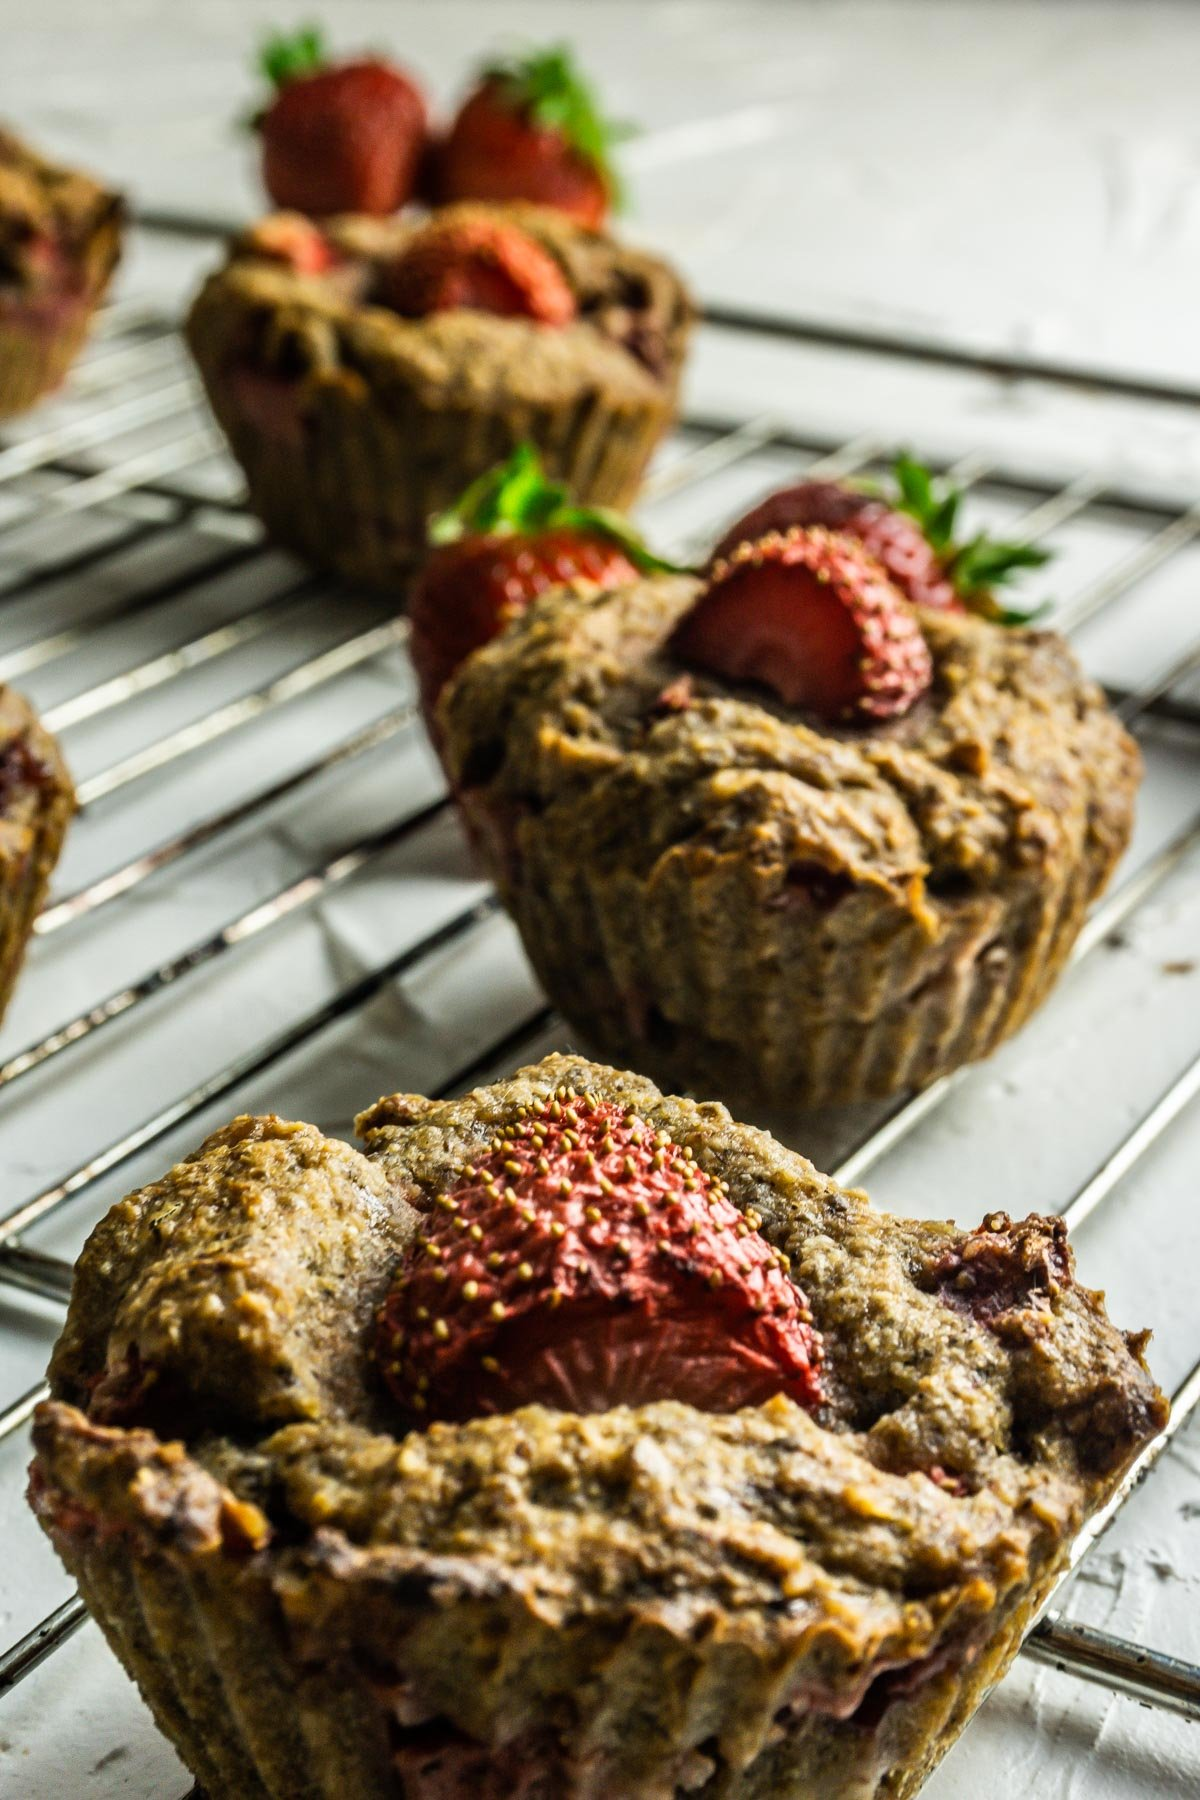 Strawberry Banana Muffins on a wired rack